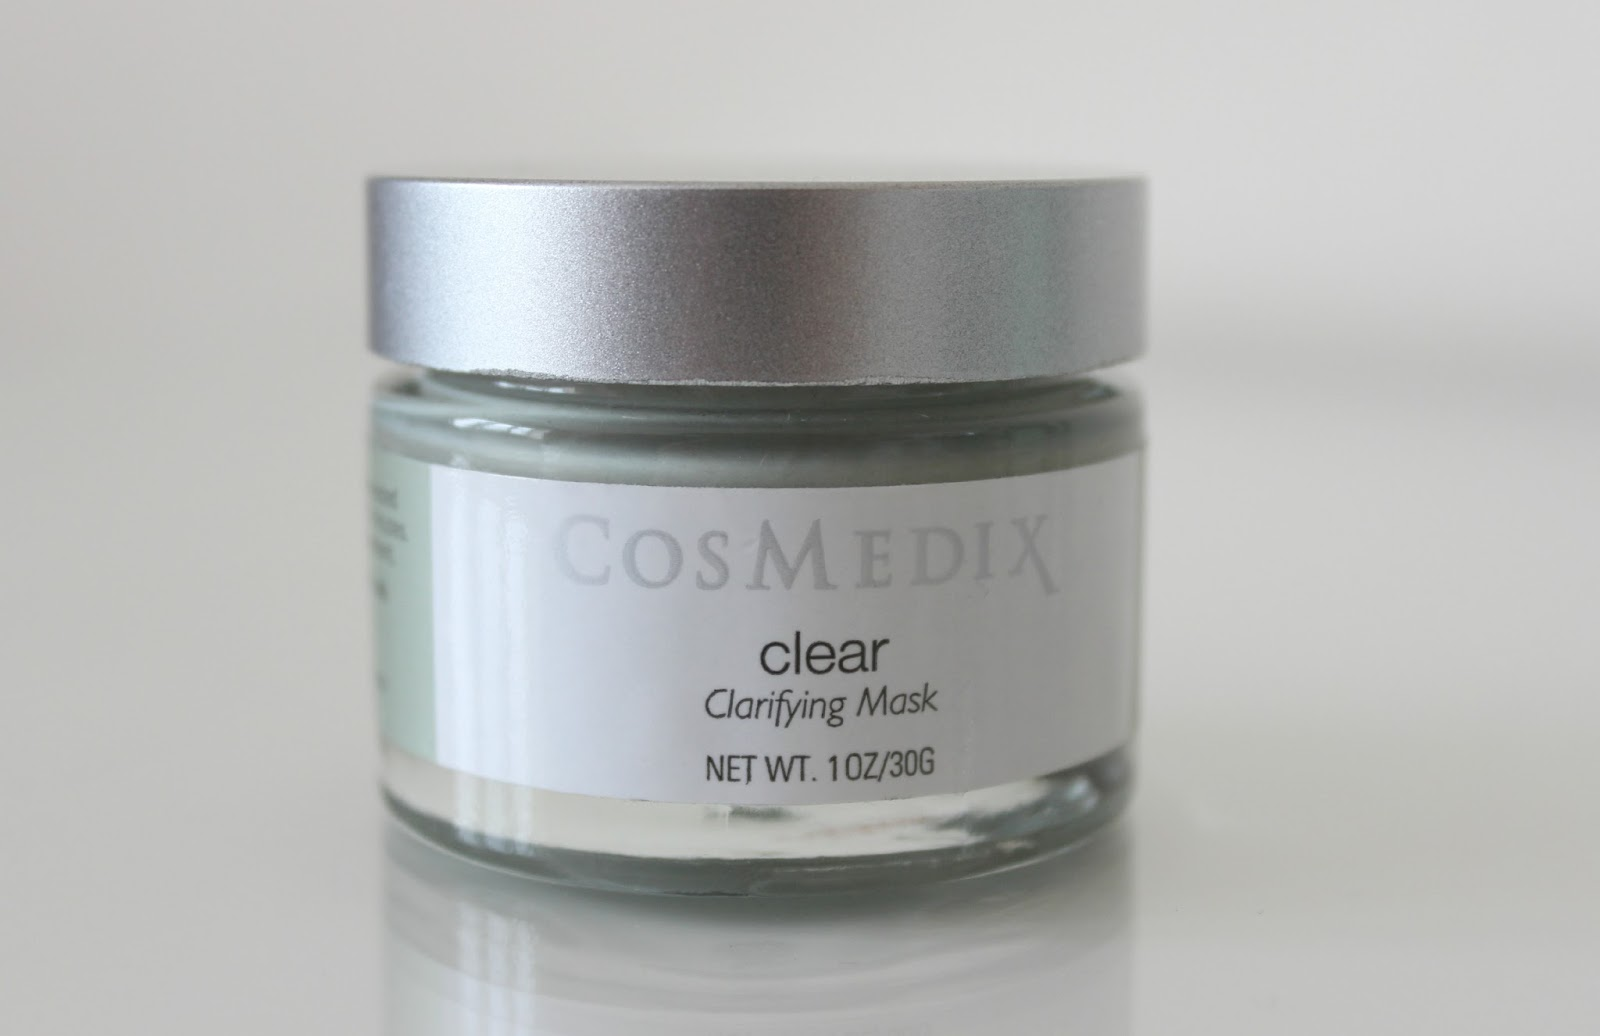 A picture of the CosMedix Clear Clarifying Mask